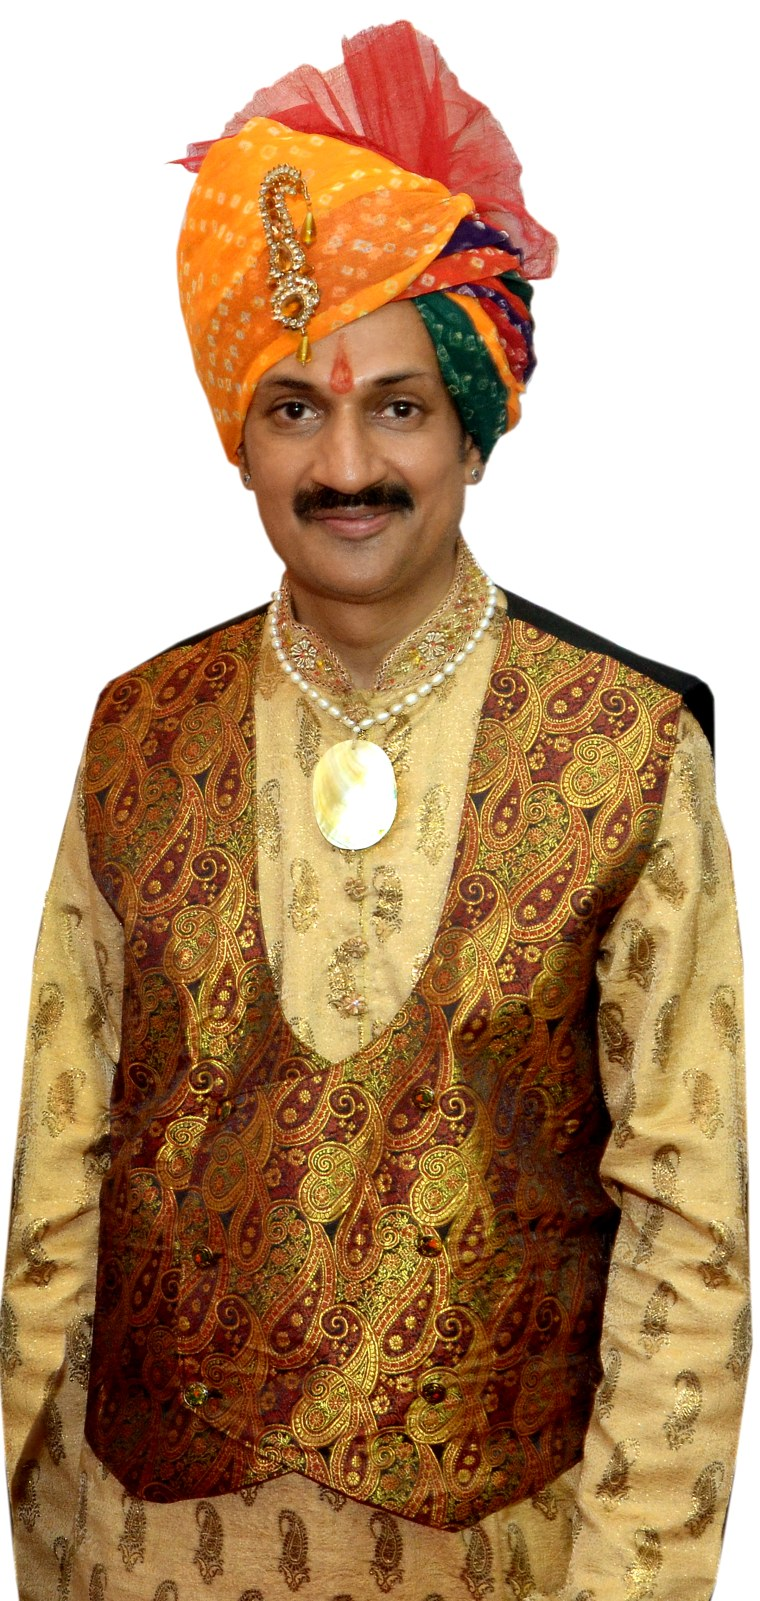 A portrait photo of Prince Manvendra Singh Gohil.